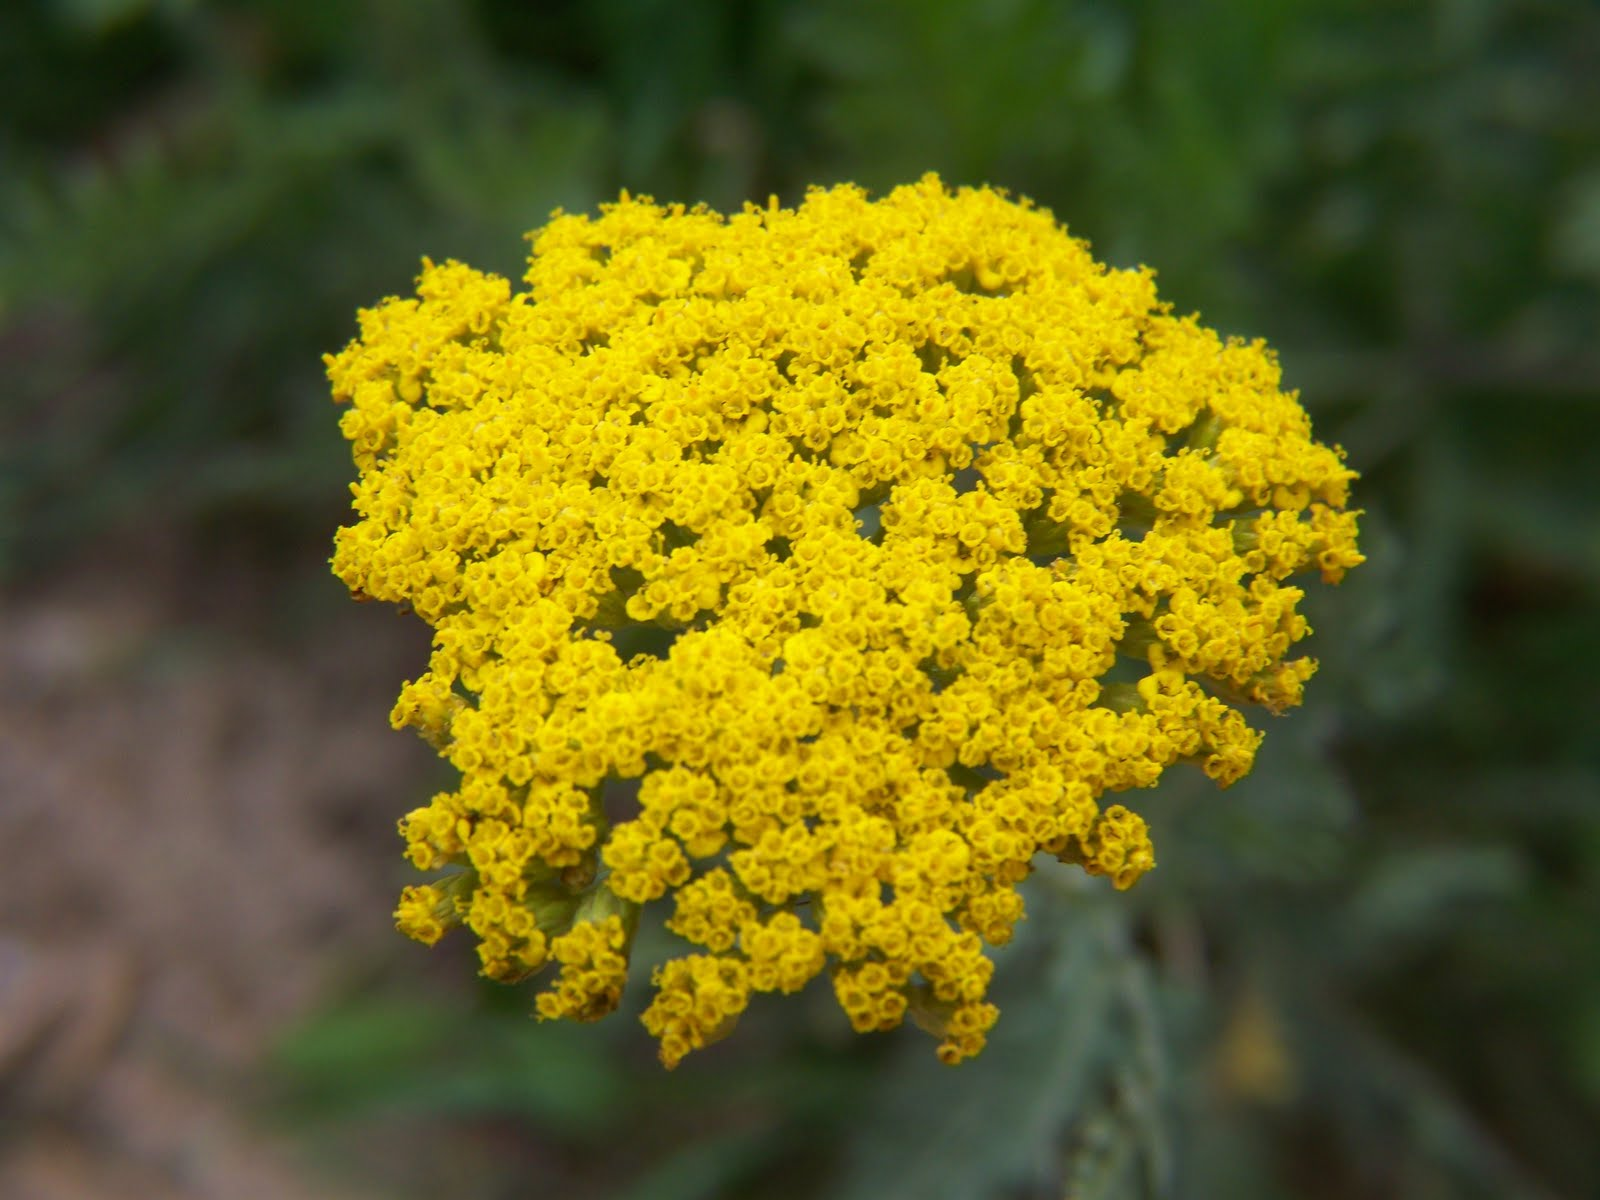 Picture of a yellow yarrow flower from this years garden Yellow Yarrow Flower